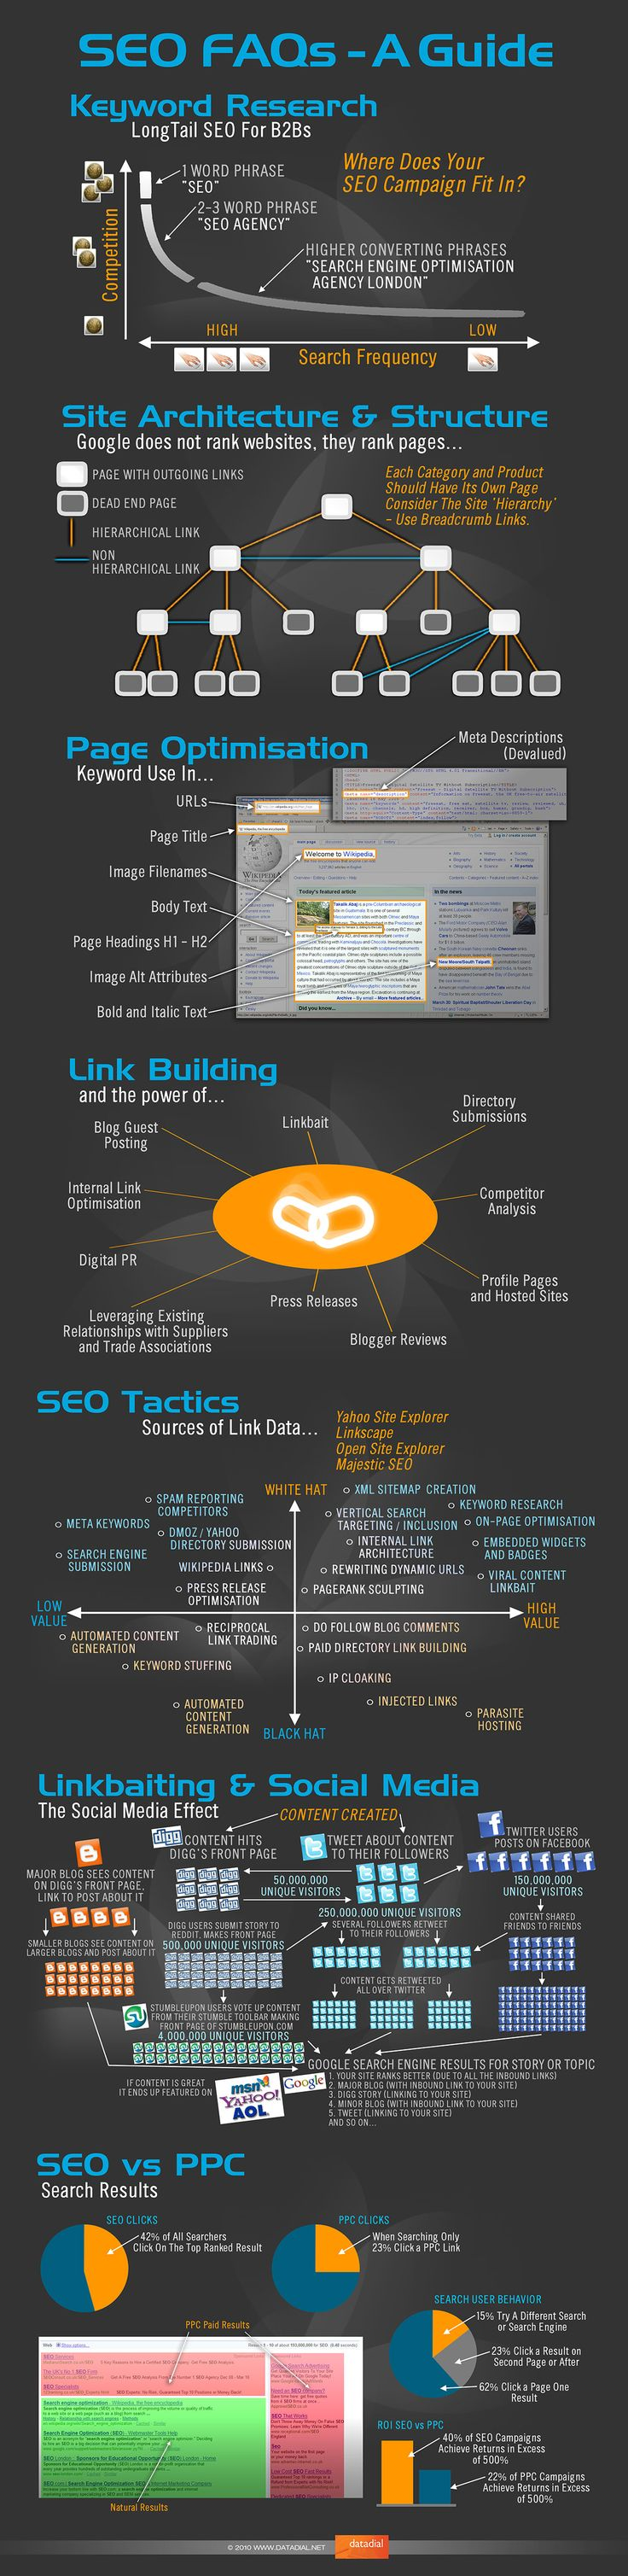 The image covers everything from basic keyword research concepts, through site architecture, page optimisation, link building, SEO tactics, social media, and some basic SEO and PPC clickthrough stats and explantions. #SEO